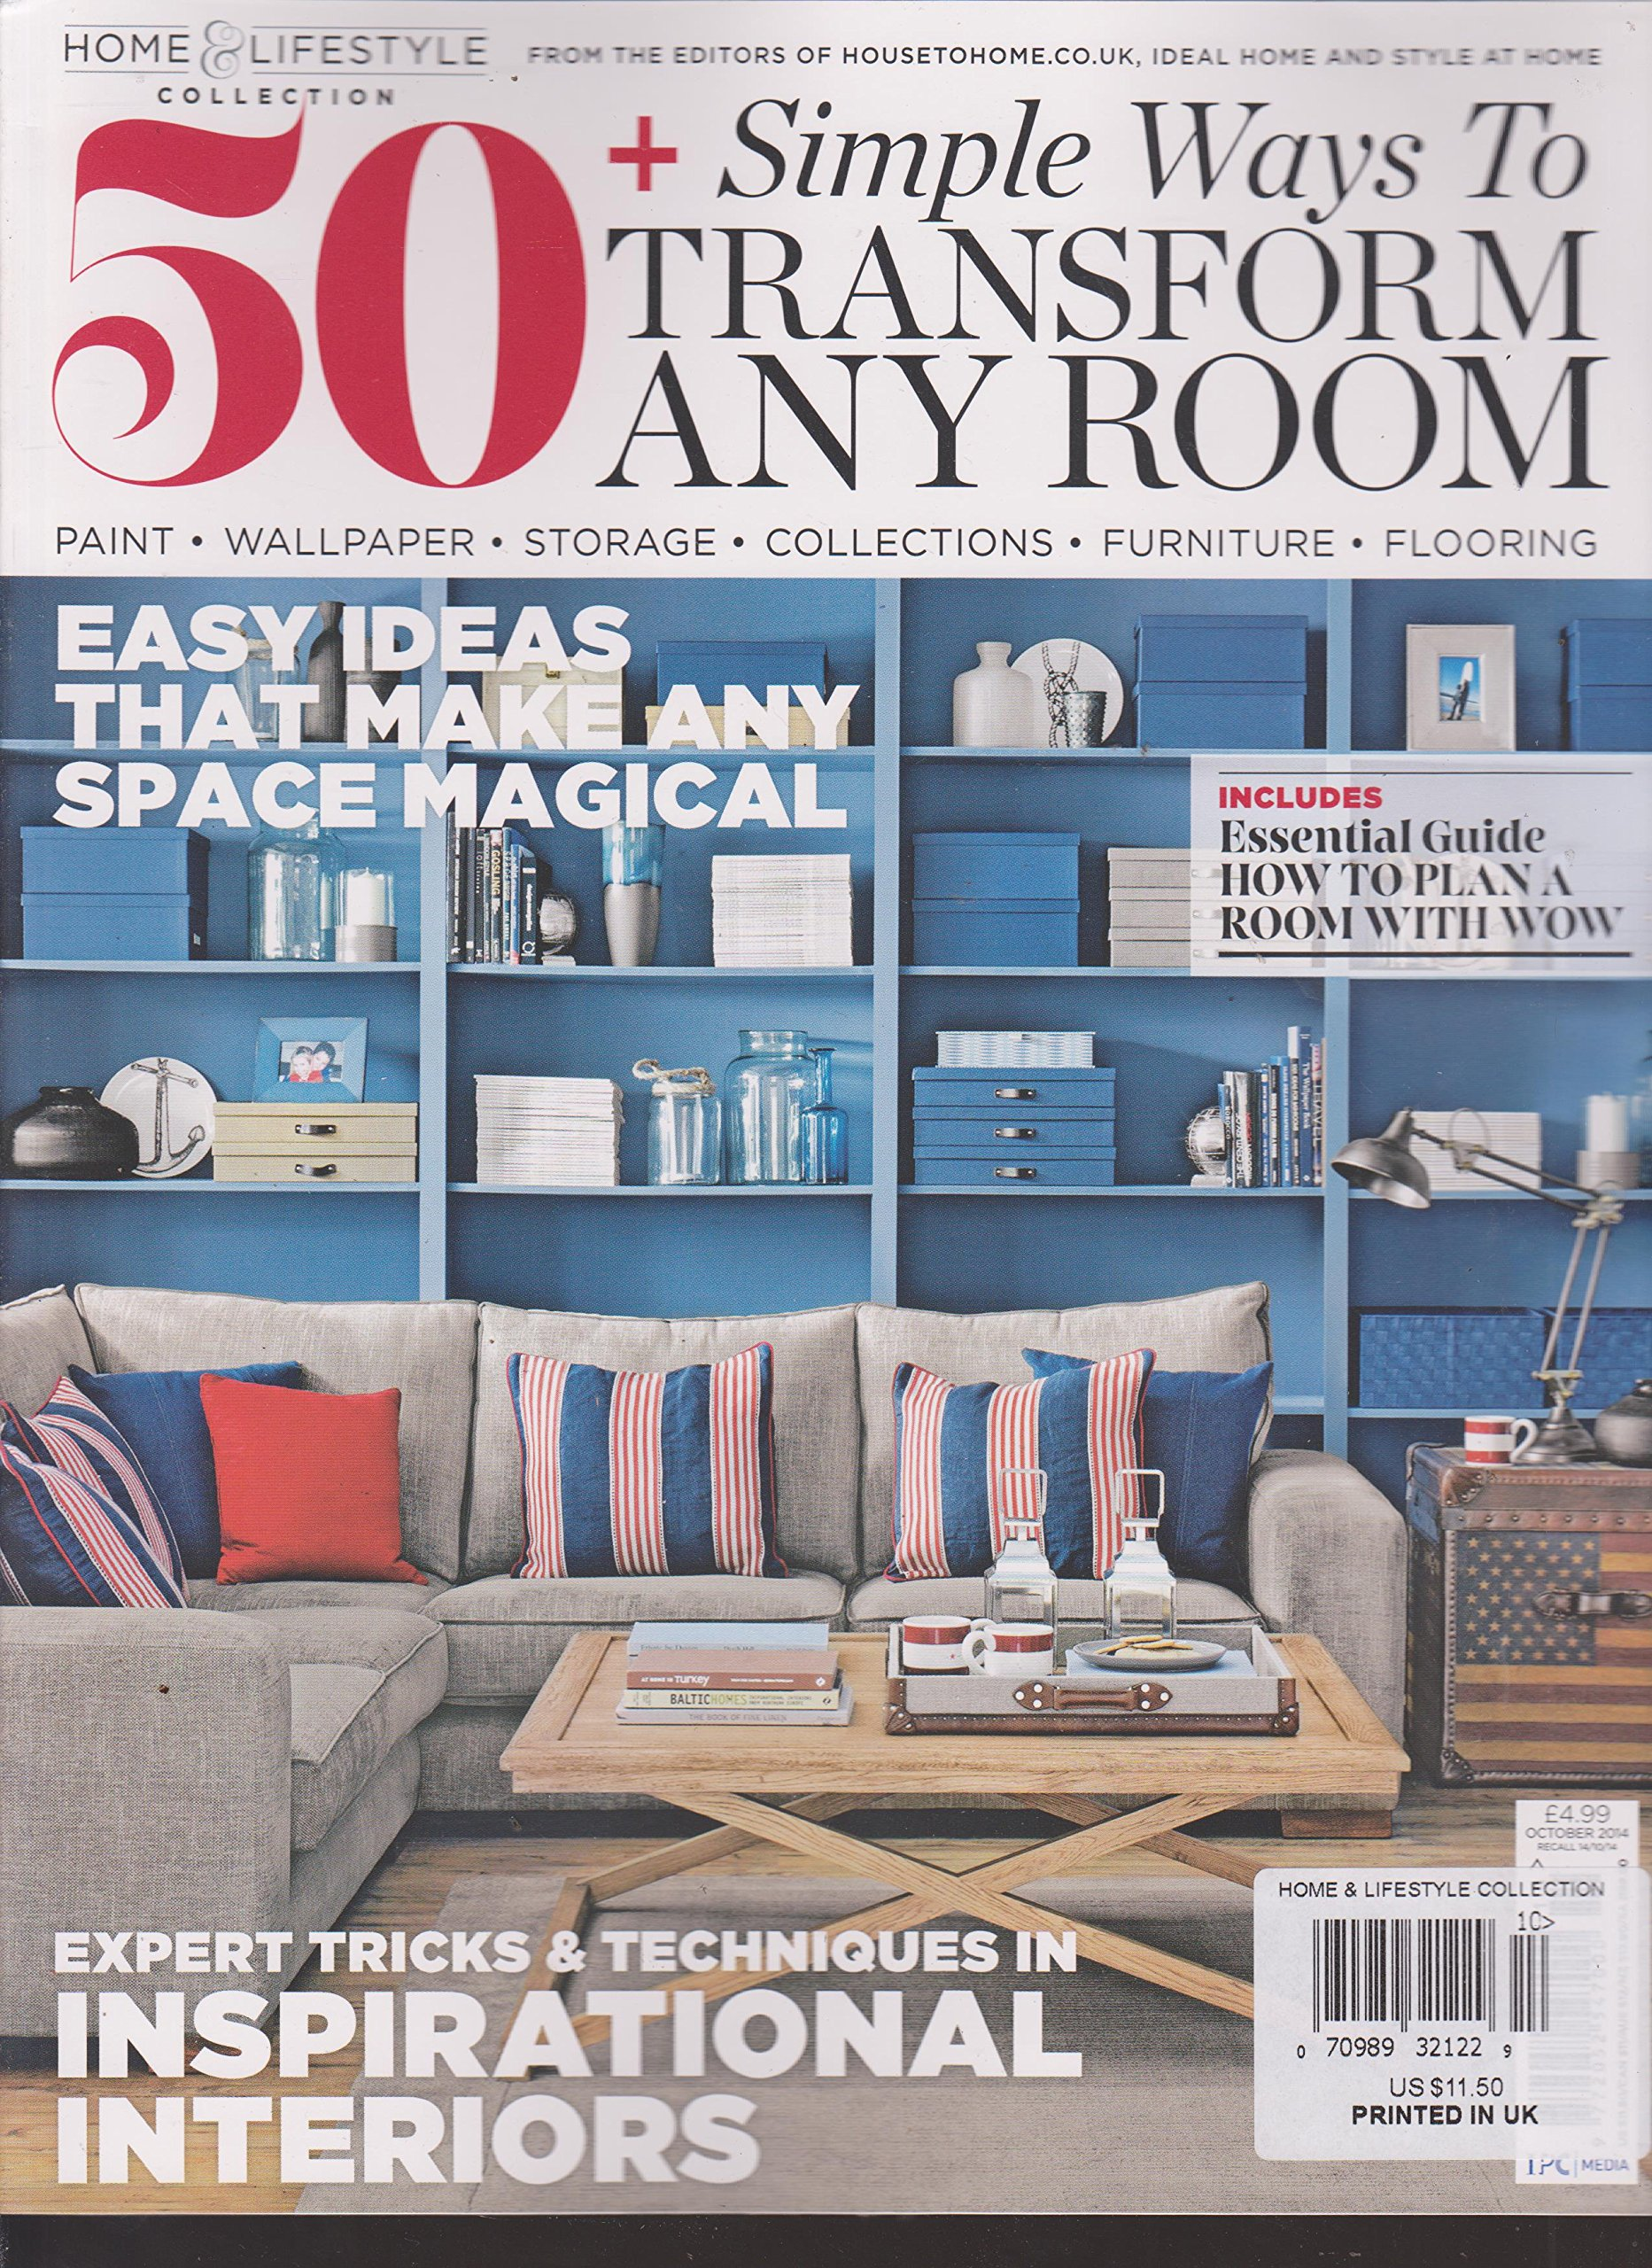 Download Home & Lifestyle Collection 50+ Simple Ways to Transform Any Room Magazine pdf epub